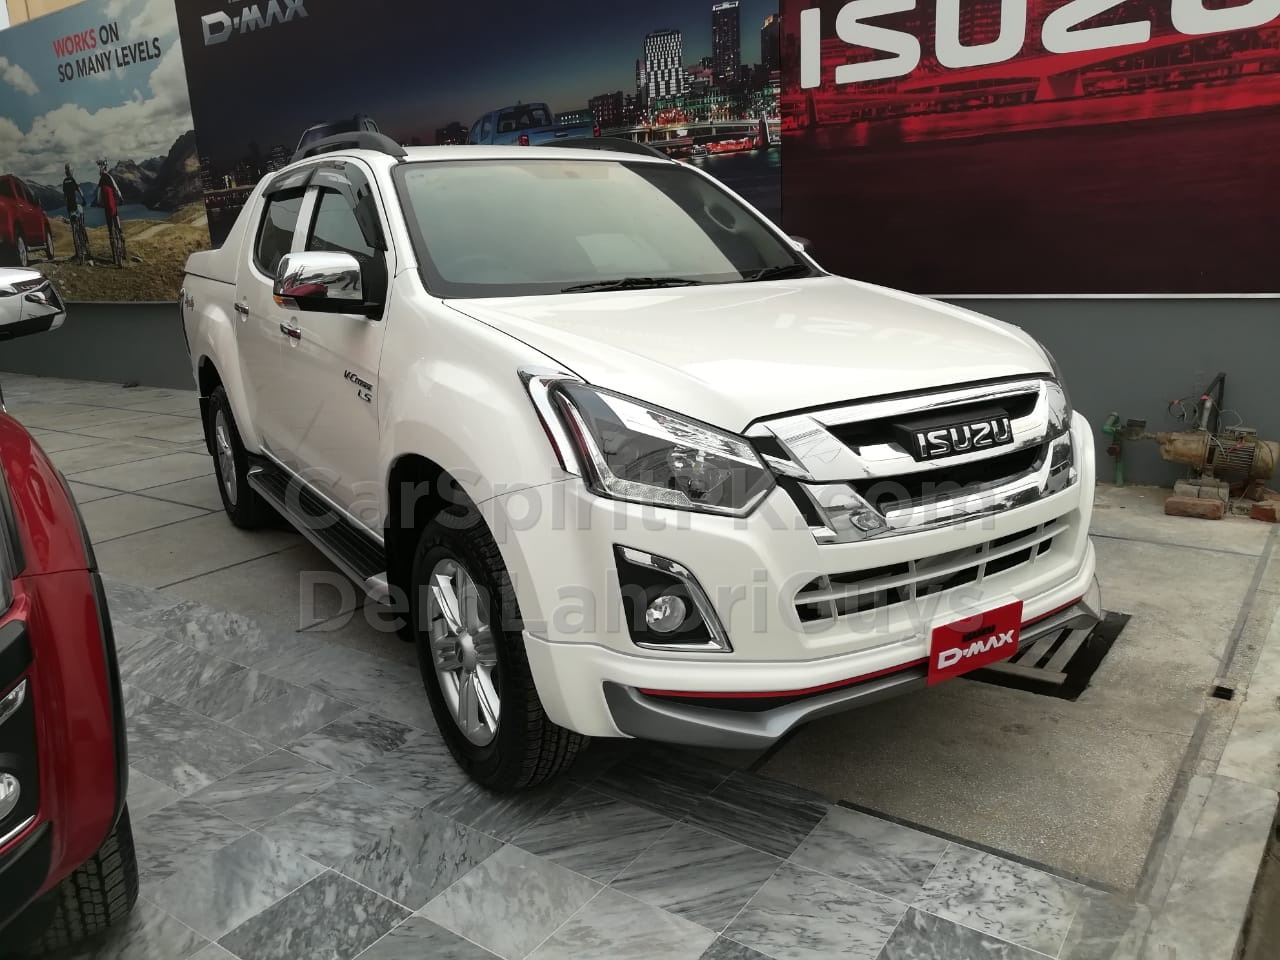 Ghandhara Officially Launches the Isuzu D-Max in Pakistan 10